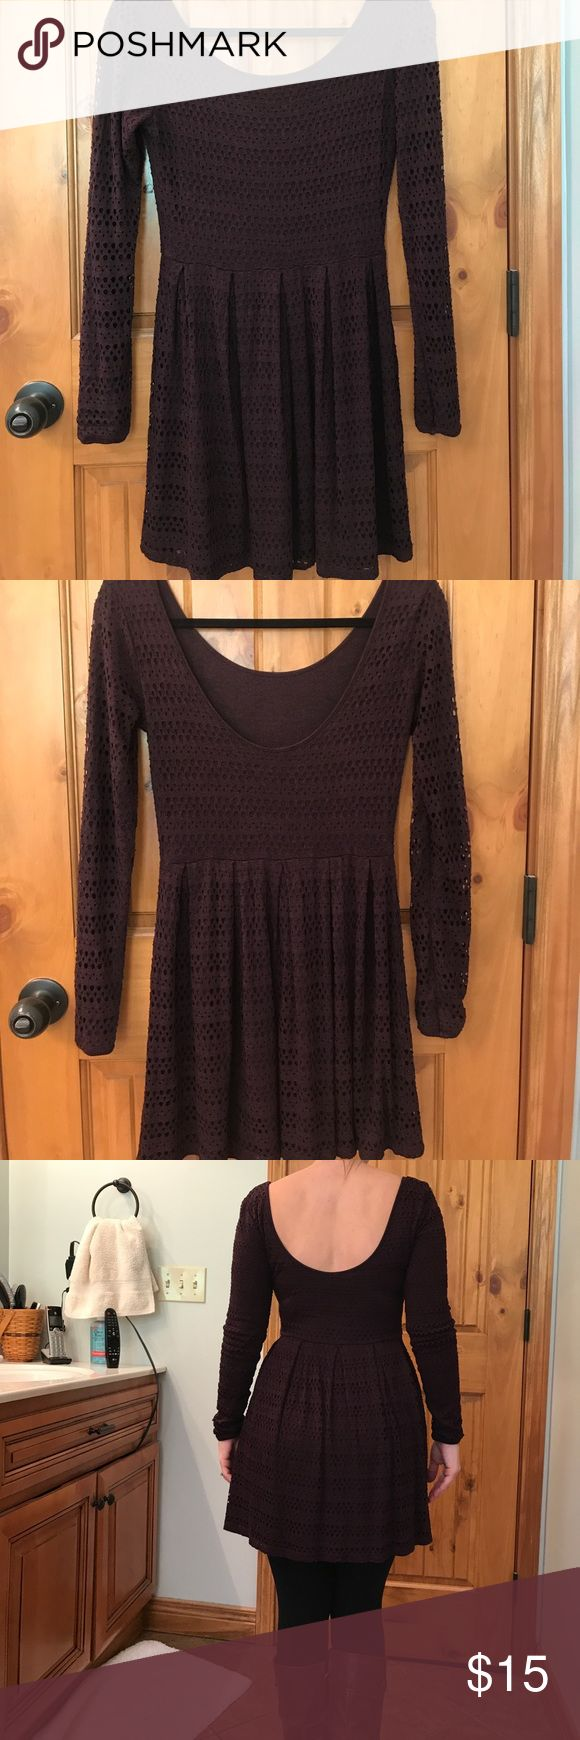 Petite Dress This dress is labeled small but definitely needs someone petite to wear it. I like it with leggings and boots. The color is a dark purple with eyelet detail over the lining. Eight Sixty Dresses Long Sleeve